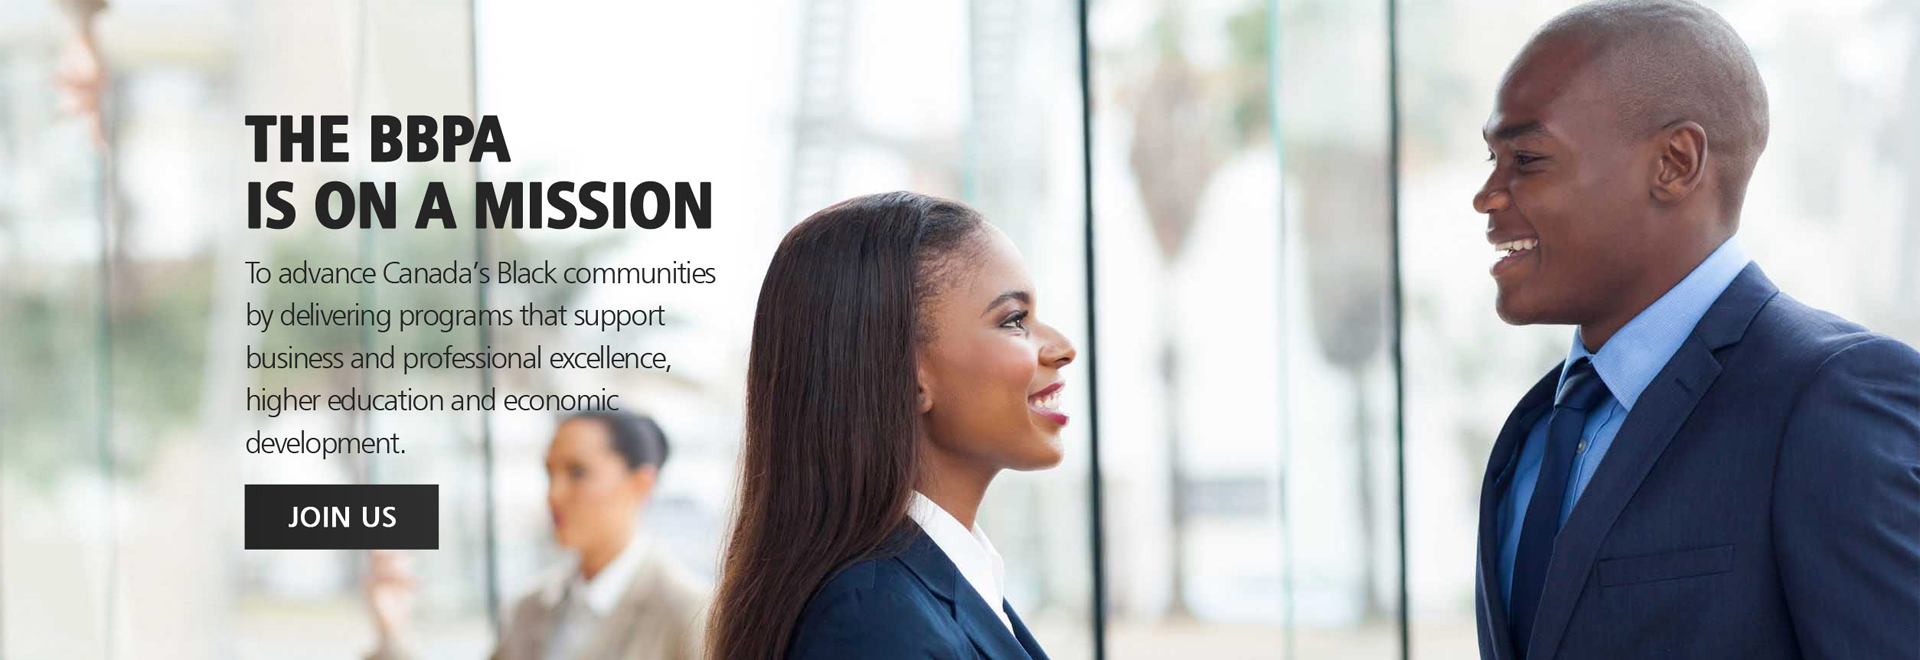 Black Business And Professional Association The Premiere Destination For Black Businesses And Professionals